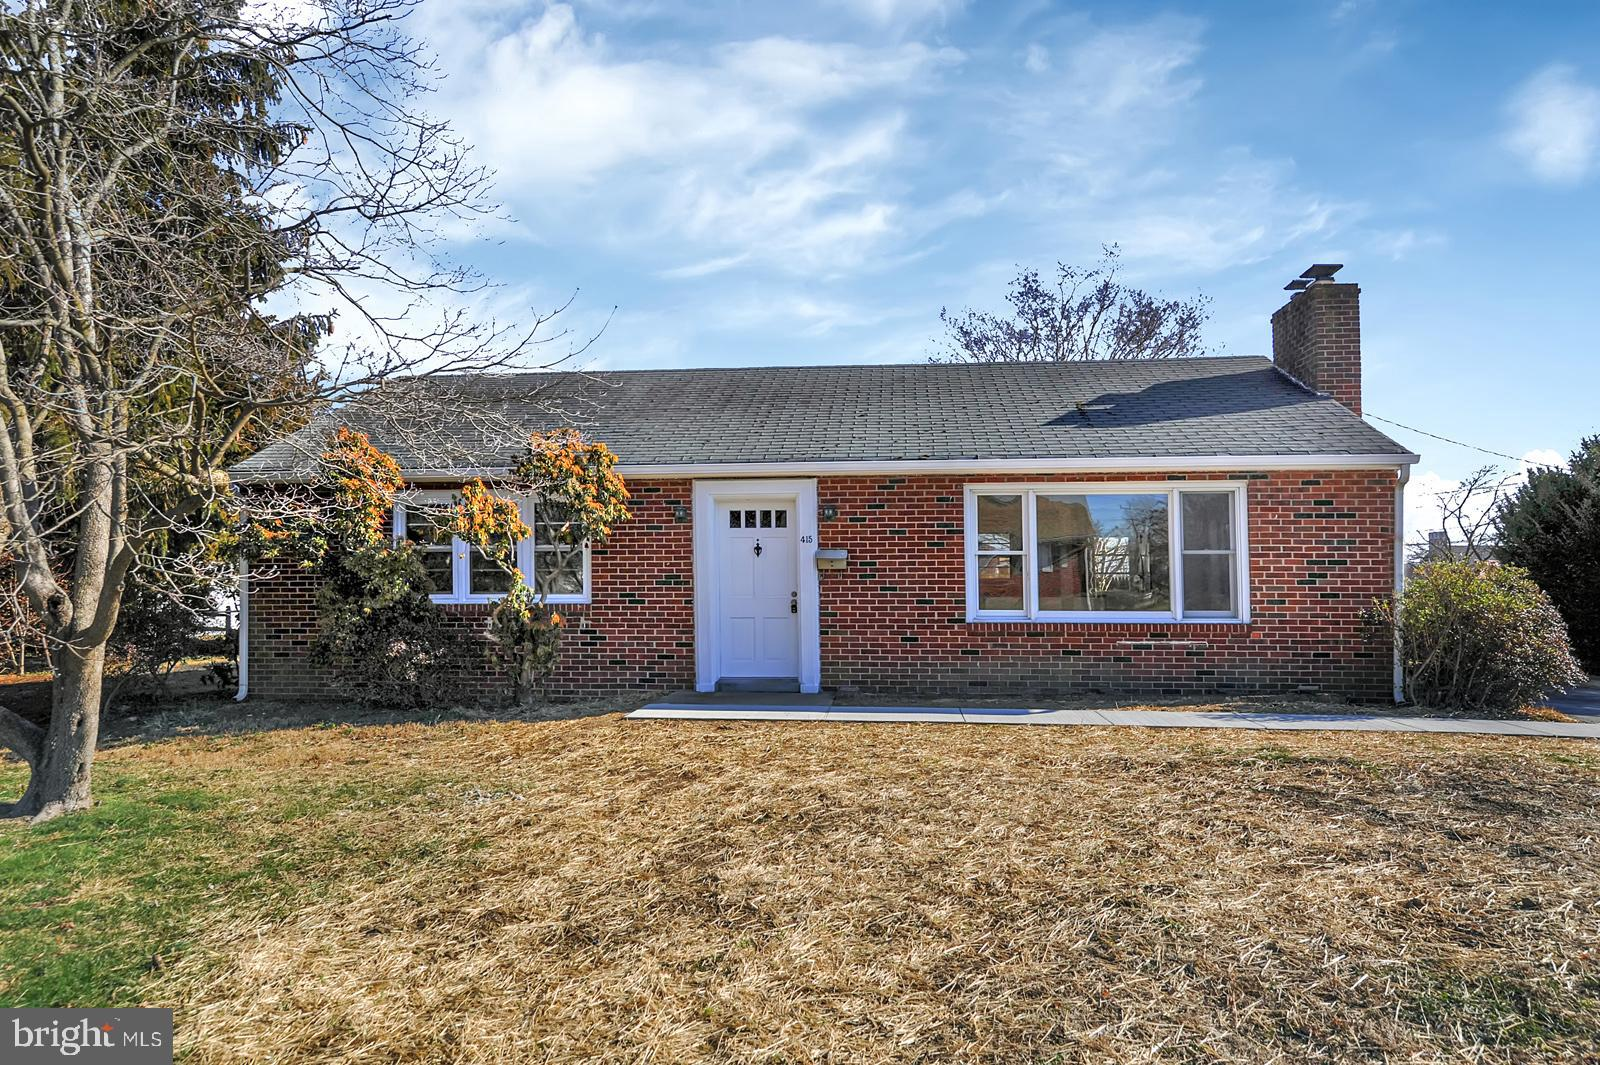 Beautifully renovated 3 bdrm/1 bath home located in the highly desirable community of Lynford. There